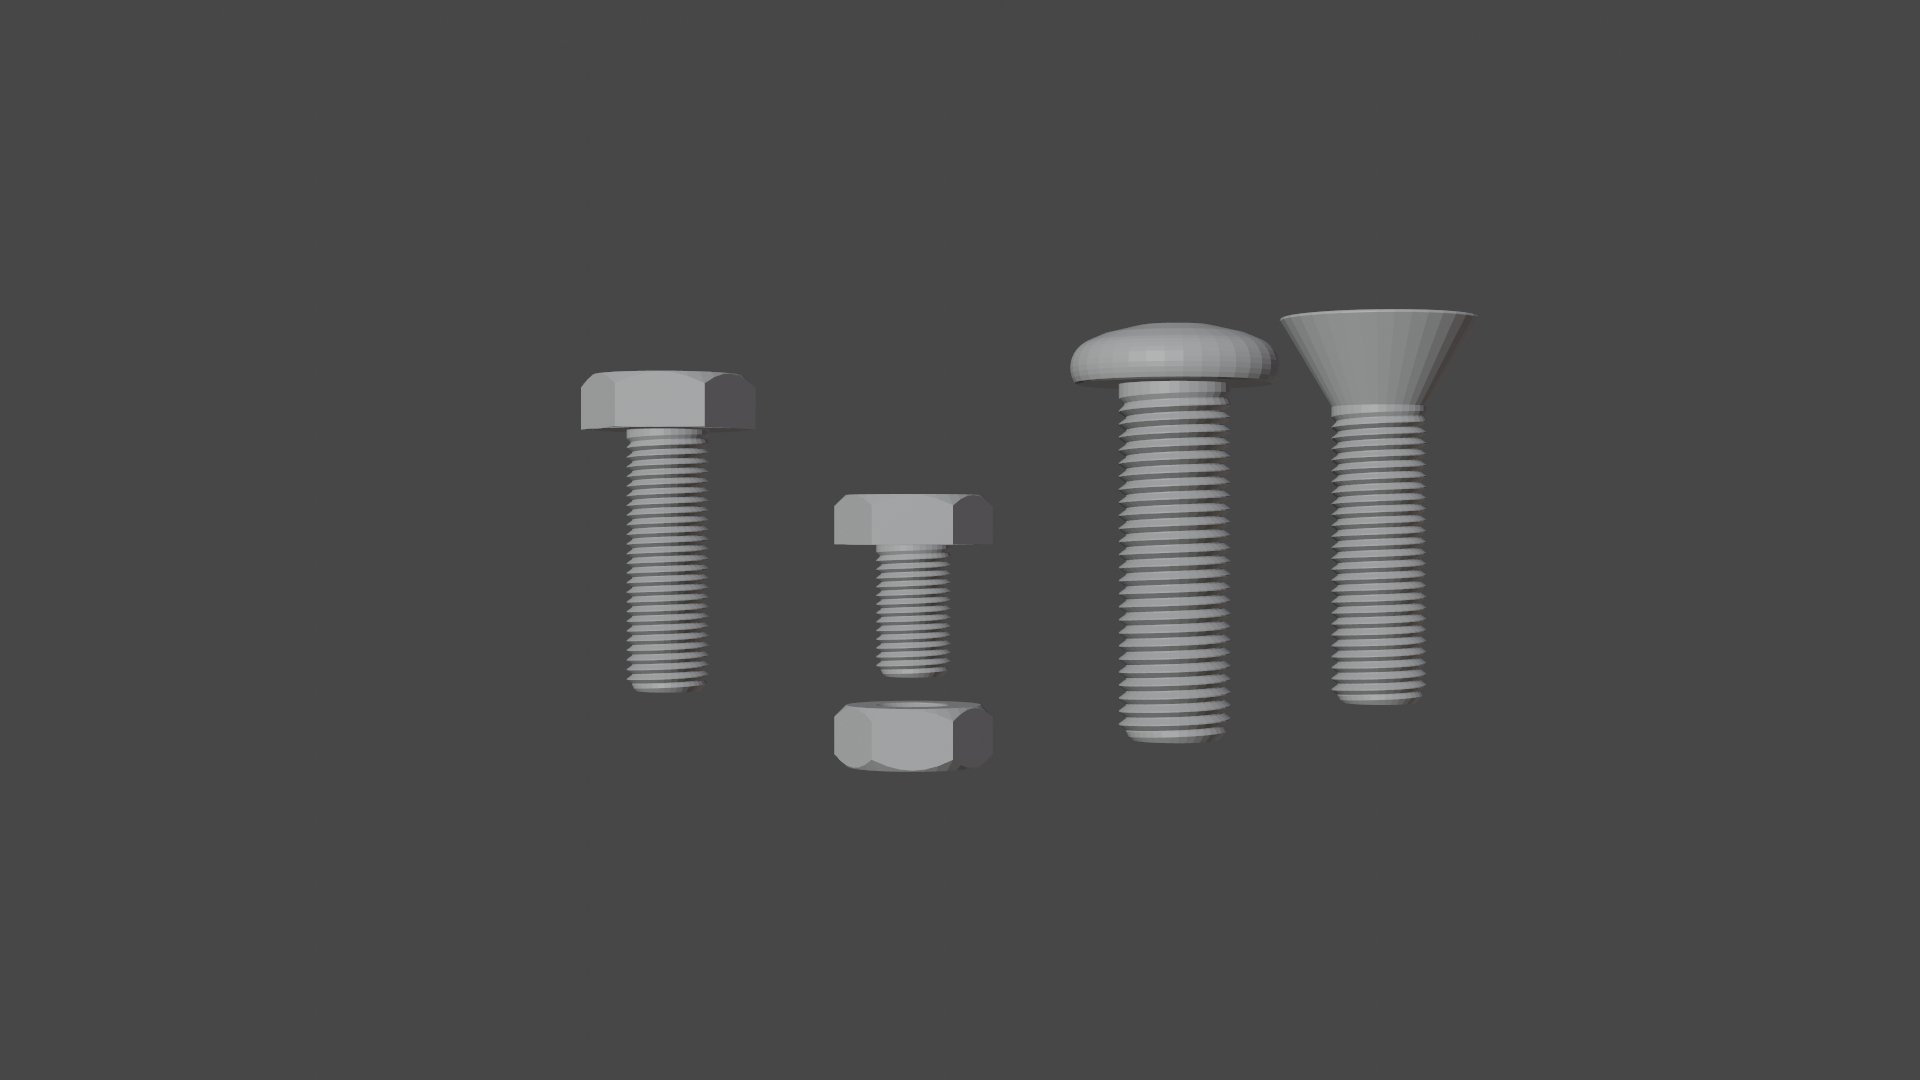 0001.png Download free STL file Bolts and nut • 3D print template, osayomipeters